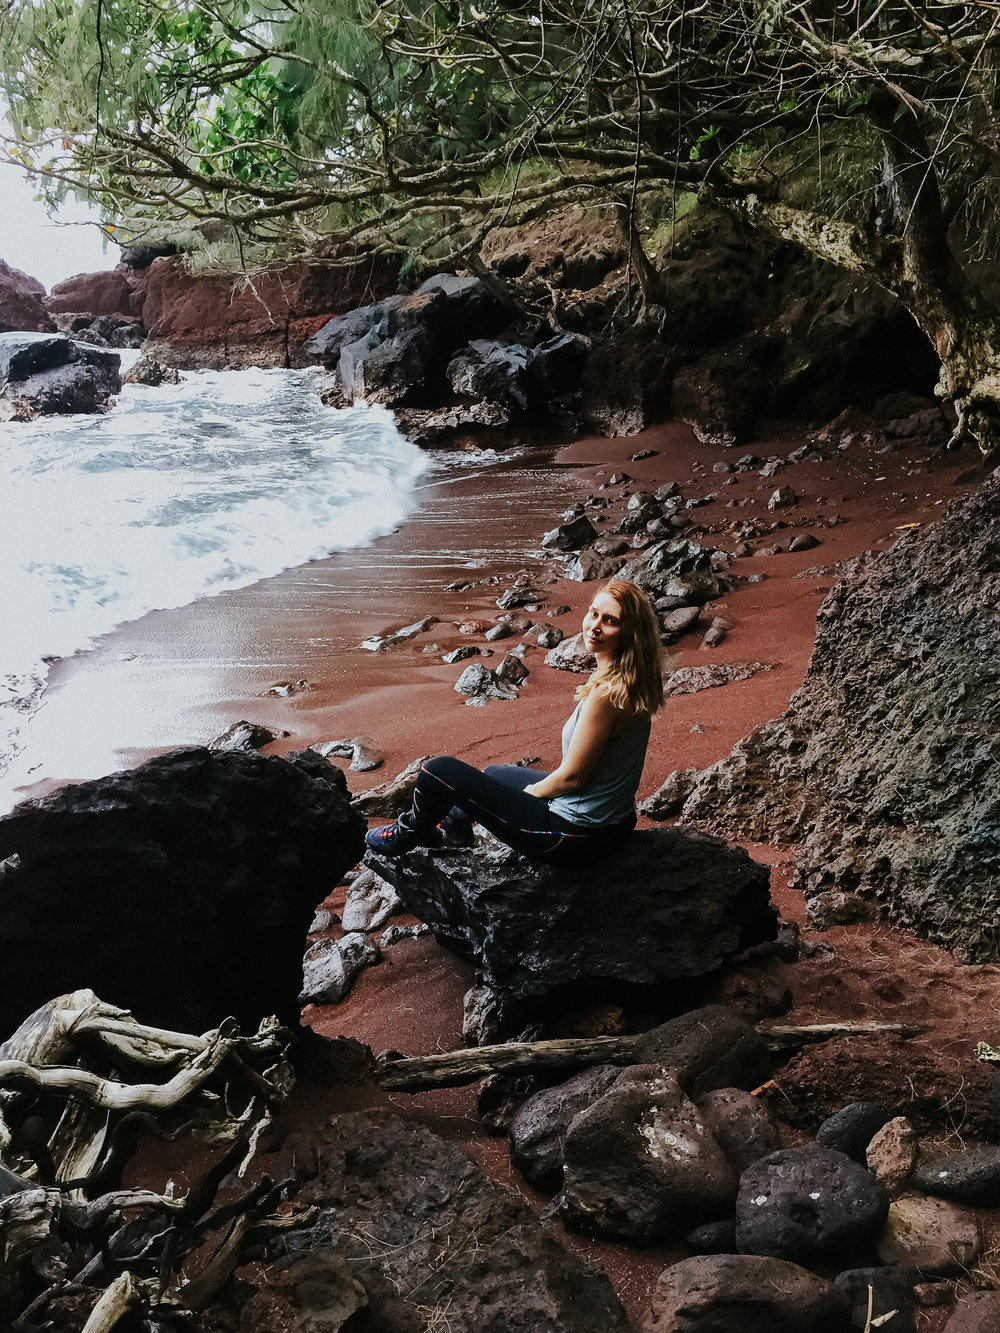 Our lack of planning resulted in a spontaneous hike in the town of Hana. Apparently there is a bigger more famous red sand beach on the other side of hidden trail but we still found a little piece of secluded red sand beach for ourselves